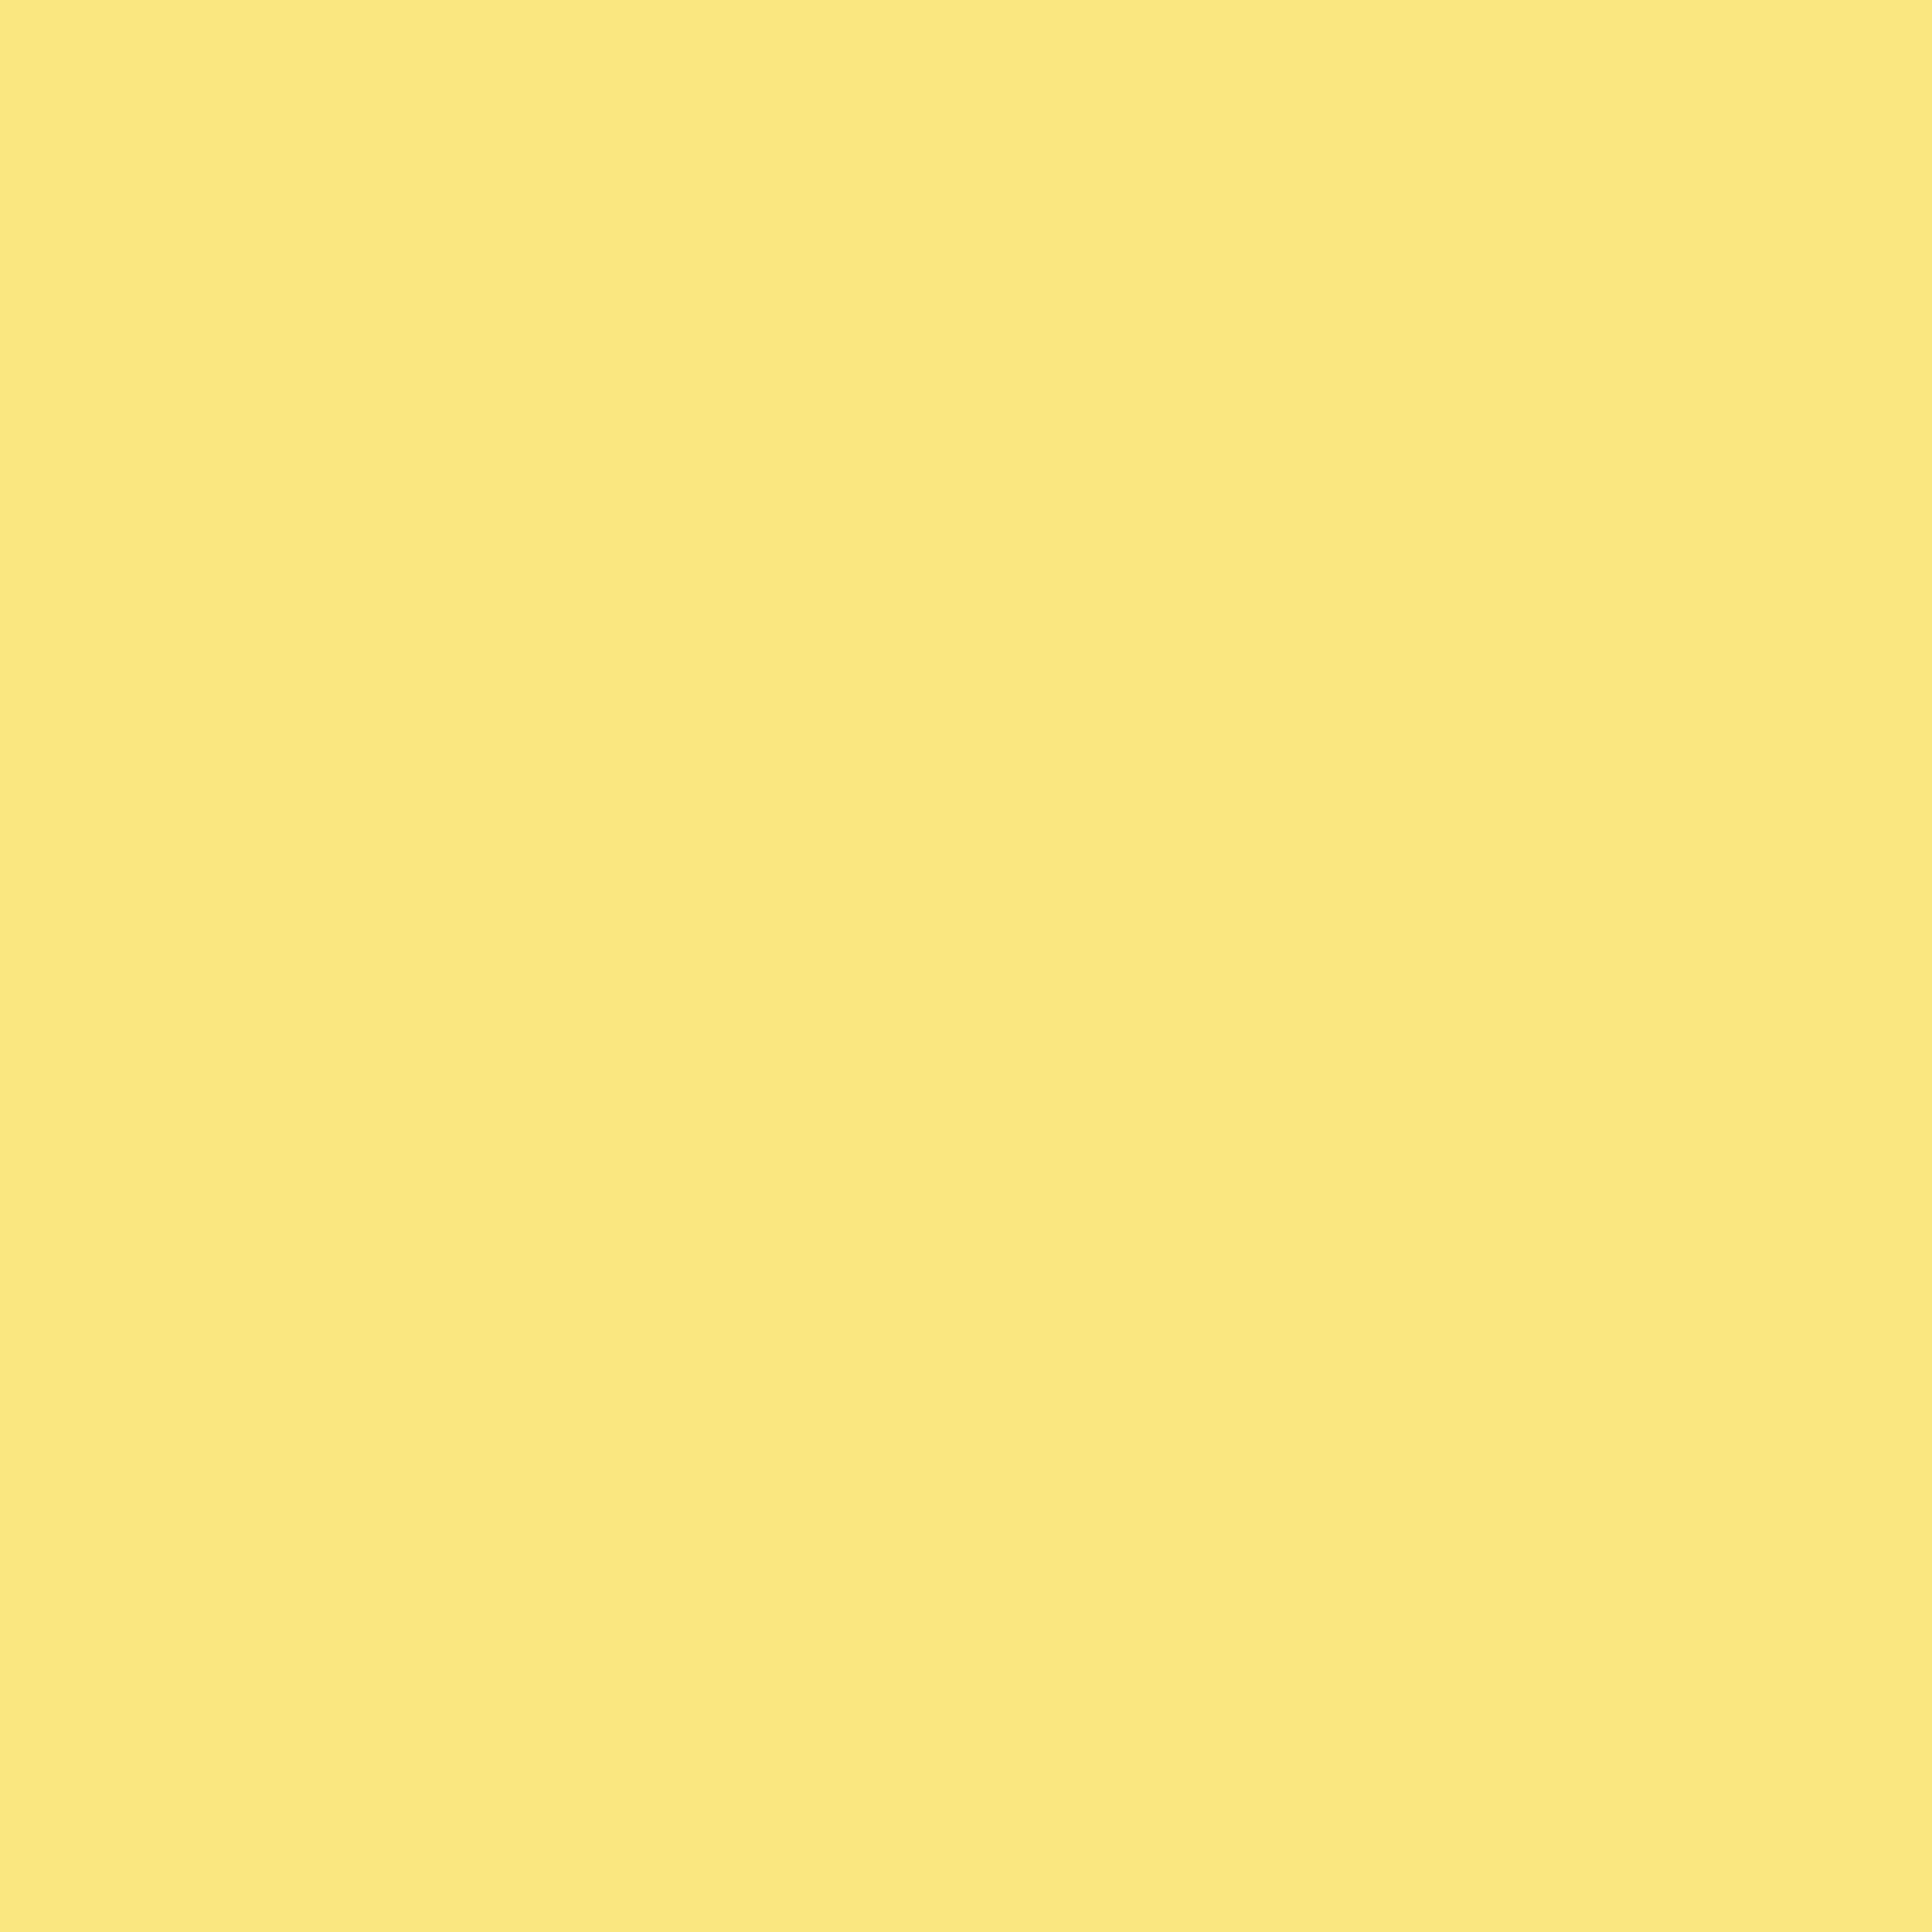 2048x2048 Yellow Crayola Solid Color Background